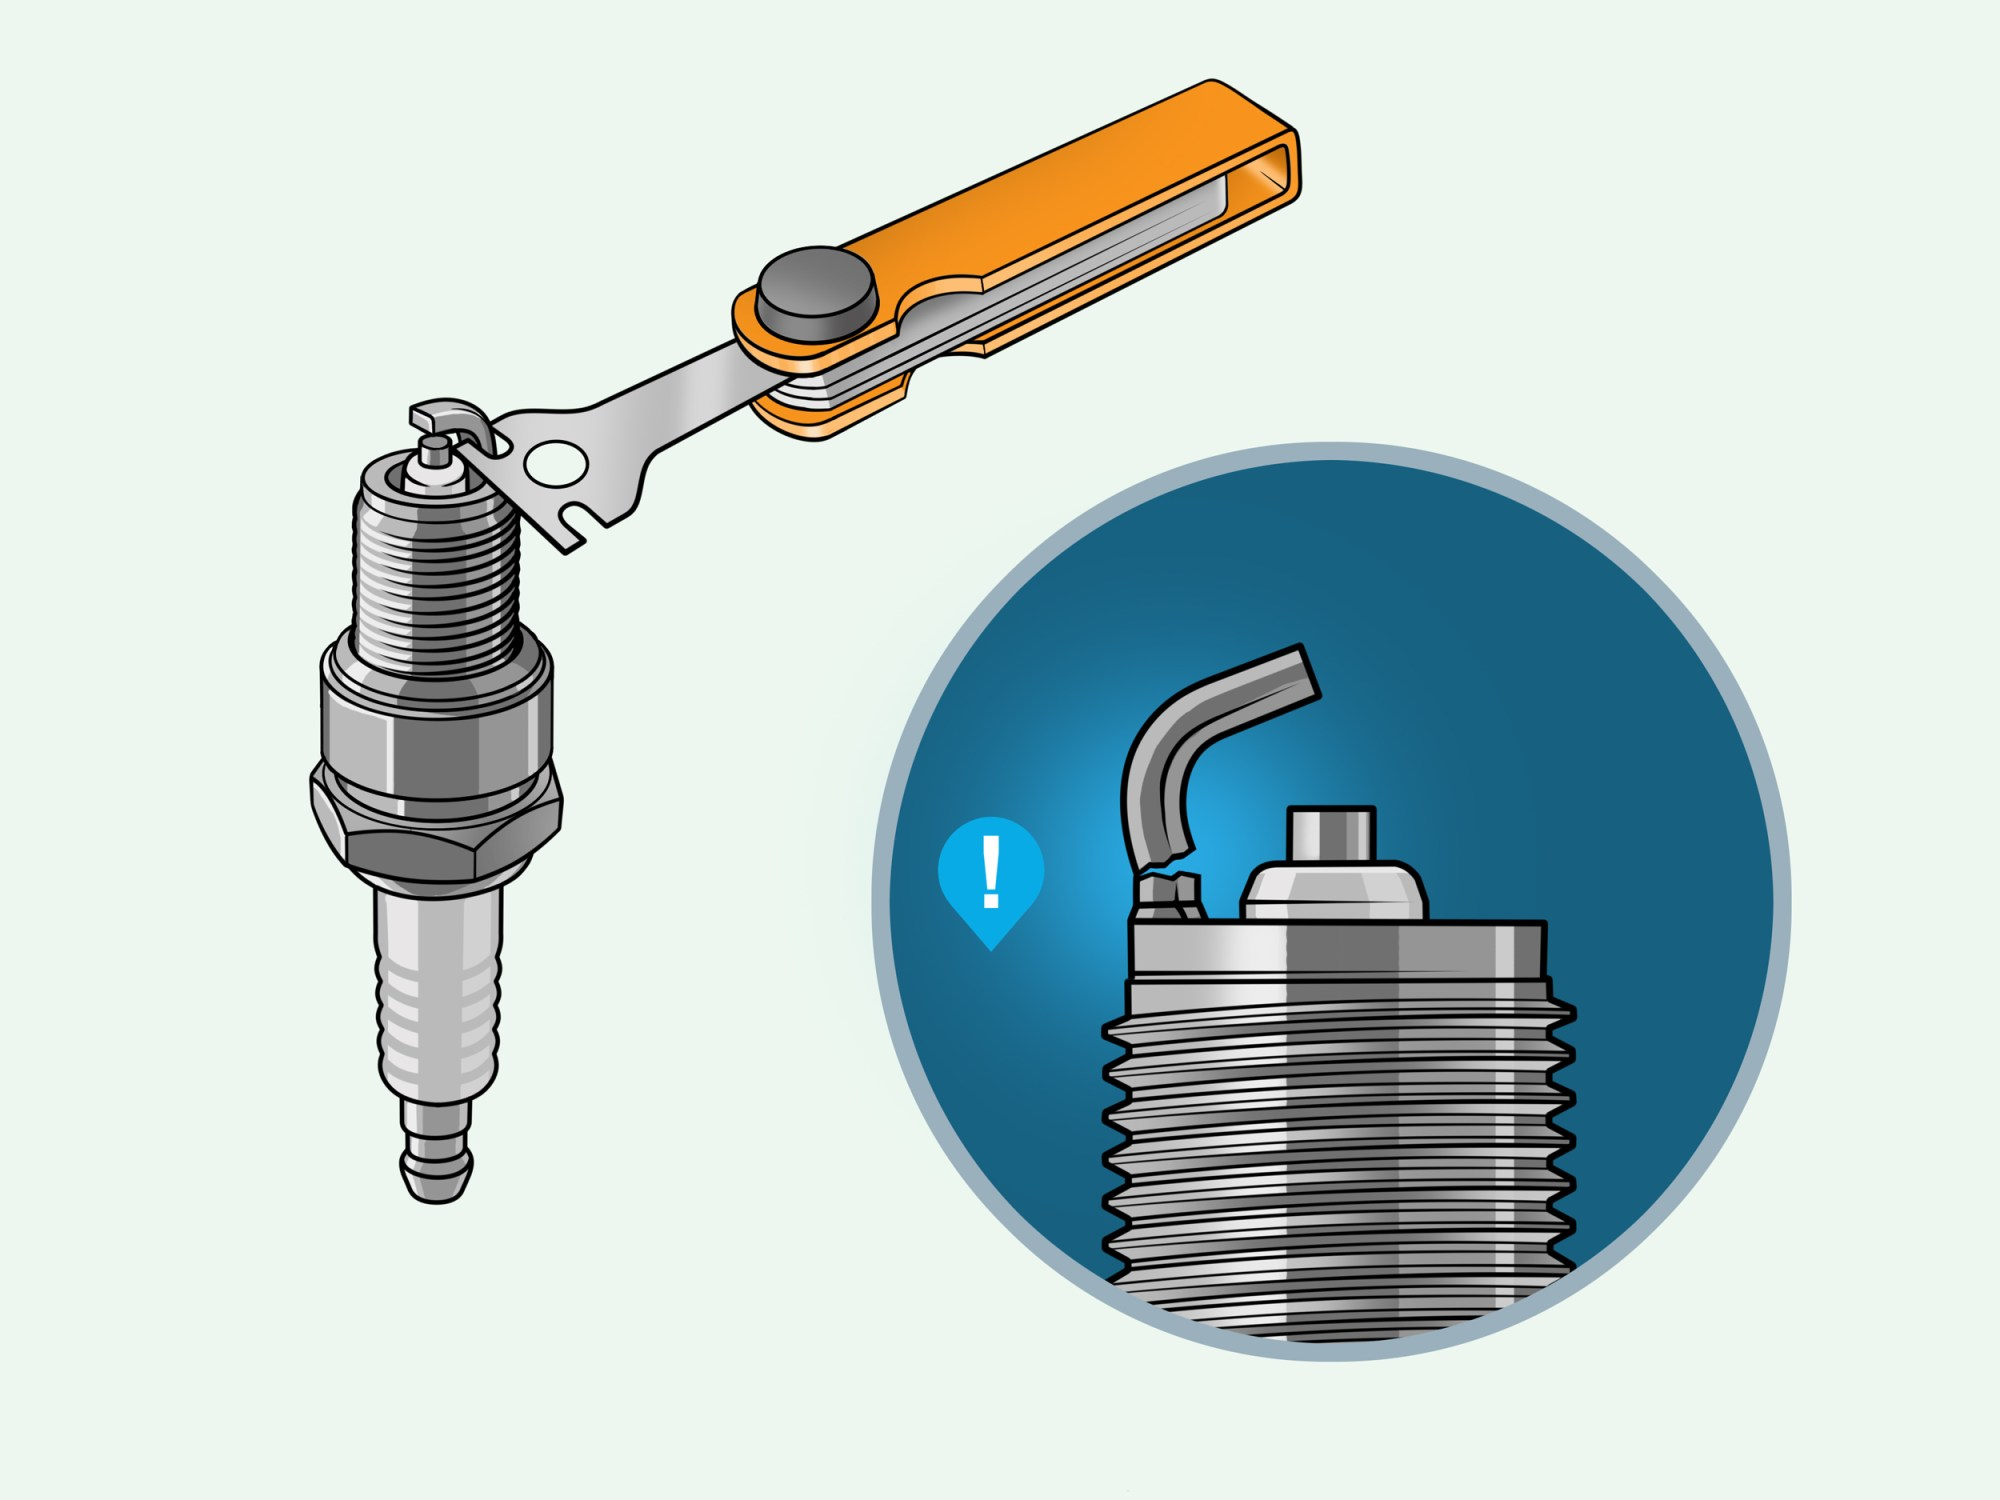 hight resolution of how to gap a spark plug